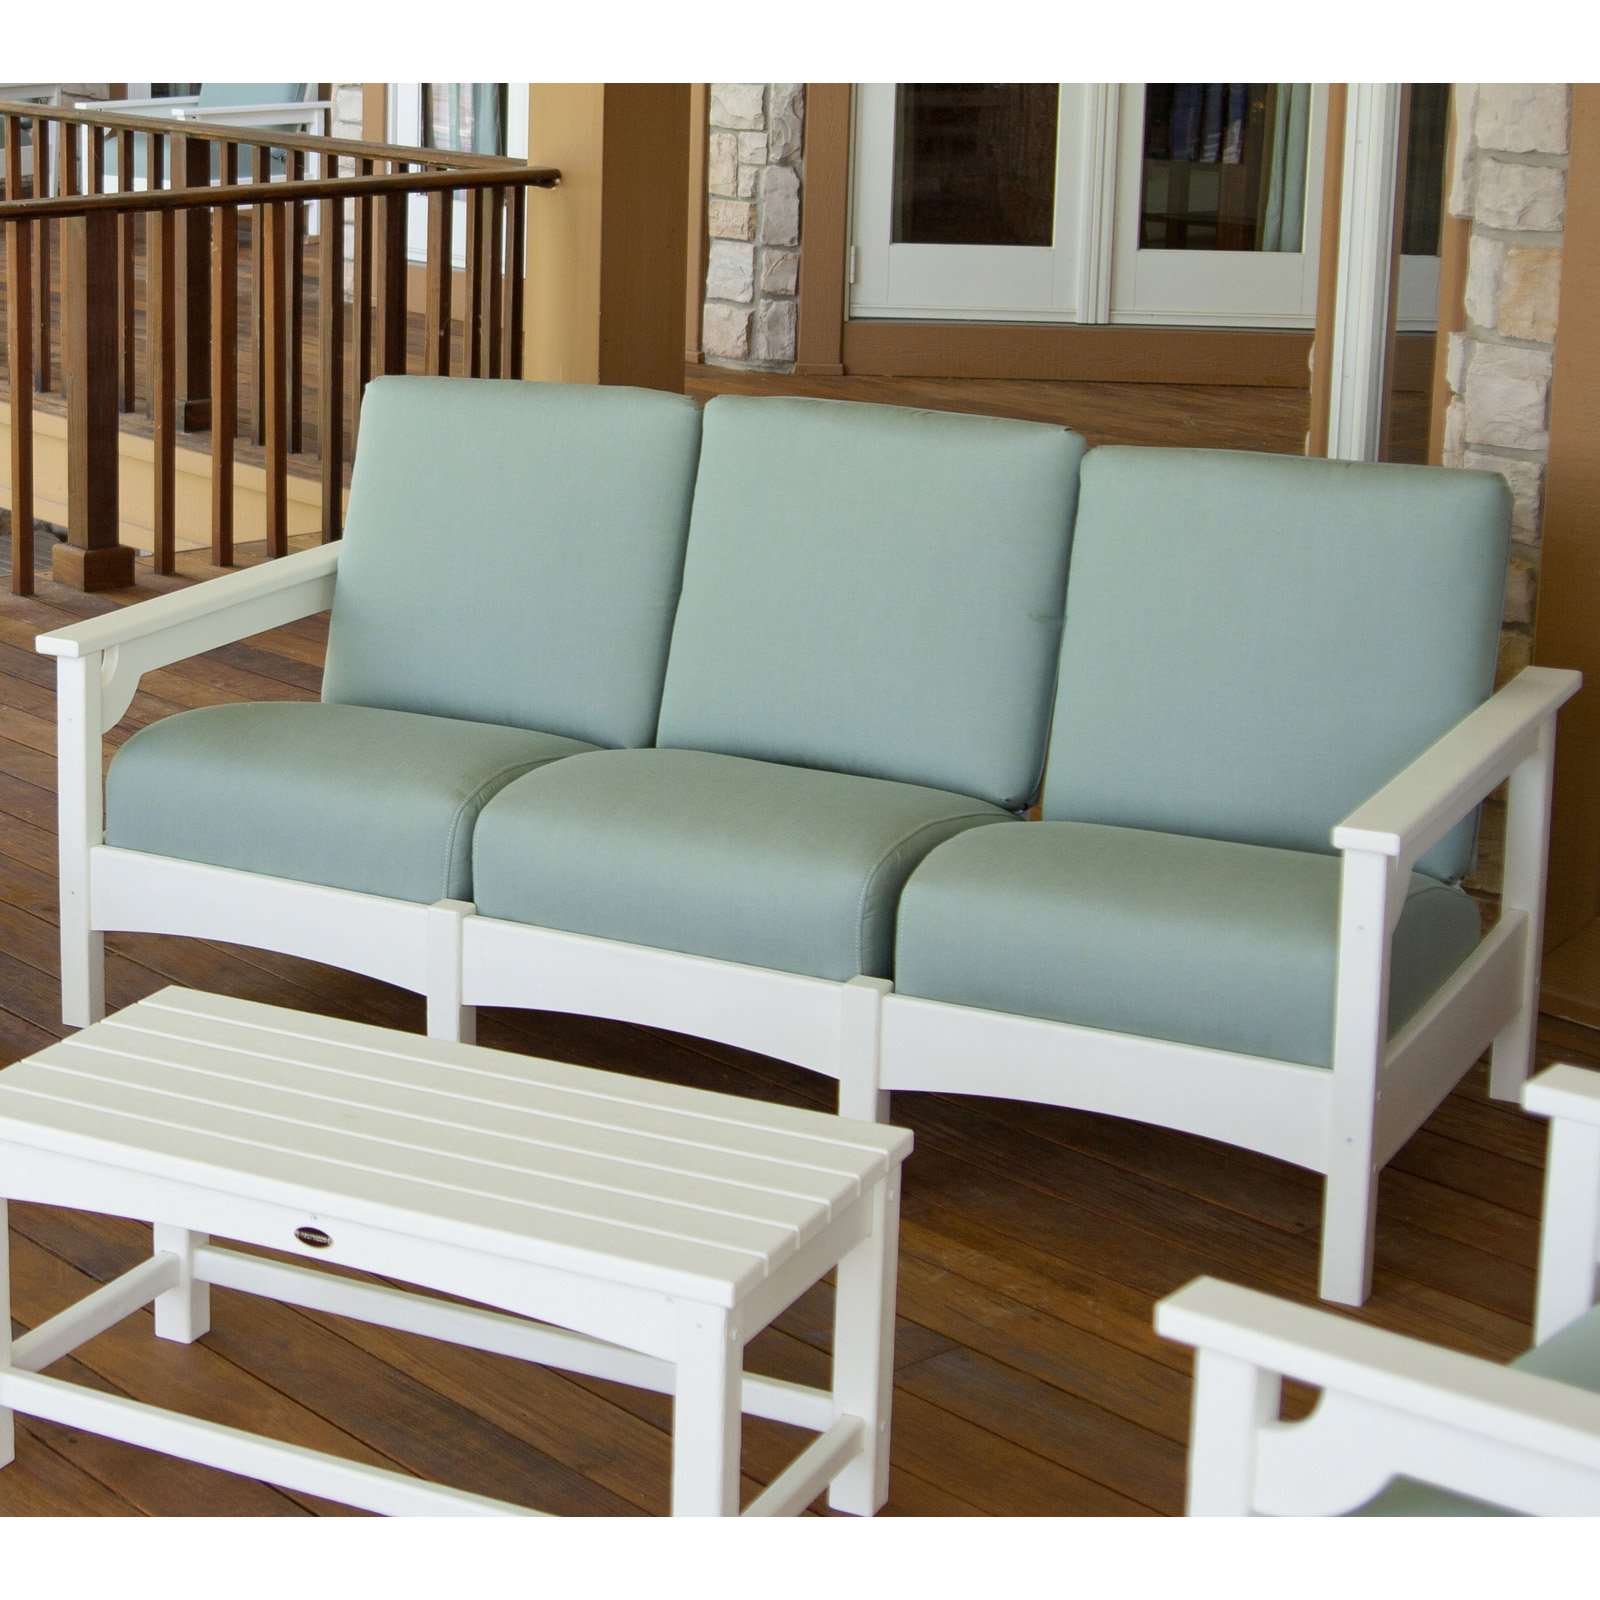 POLYWOOD® Club Sofa - White / Spa